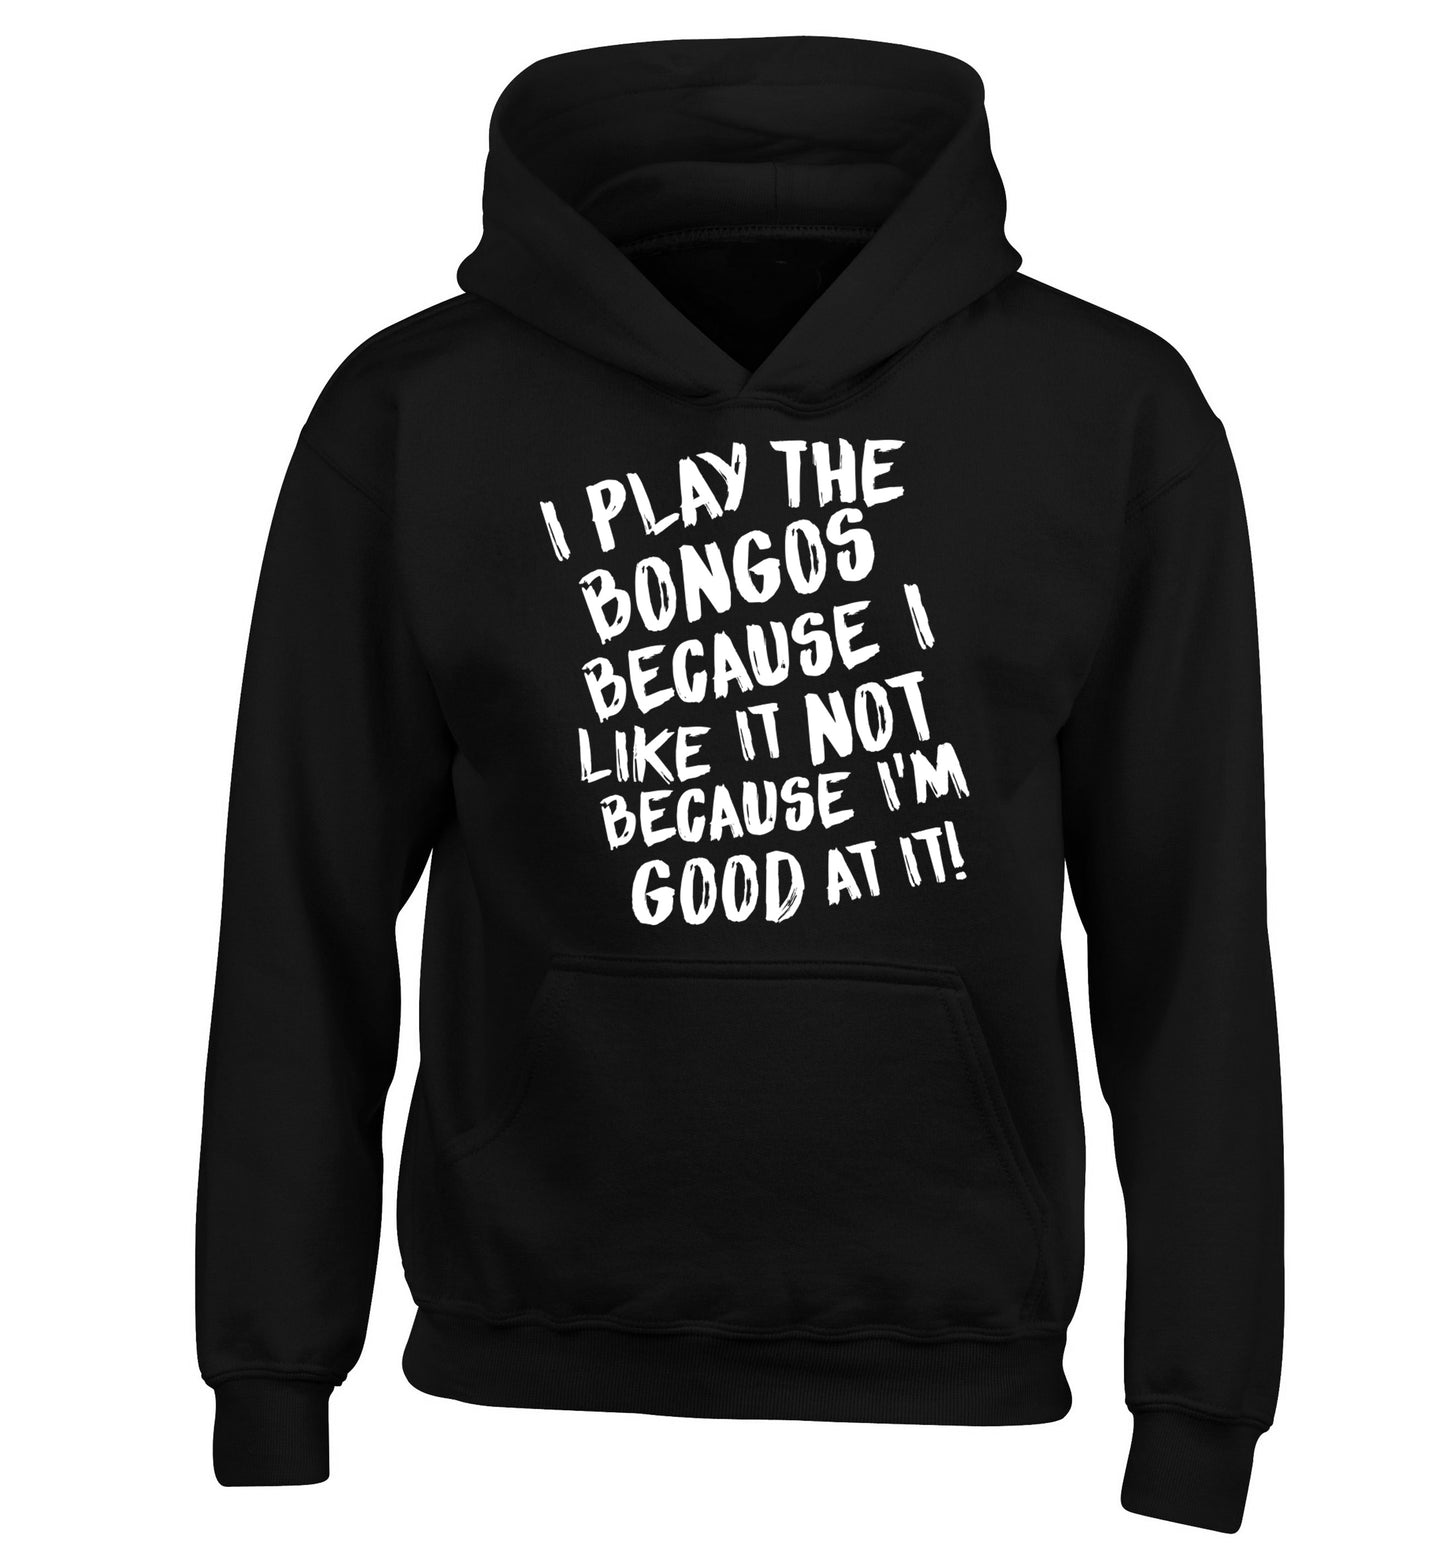 I play the bongos because I like it not because I'm good at it children's black hoodie 12-14 Years